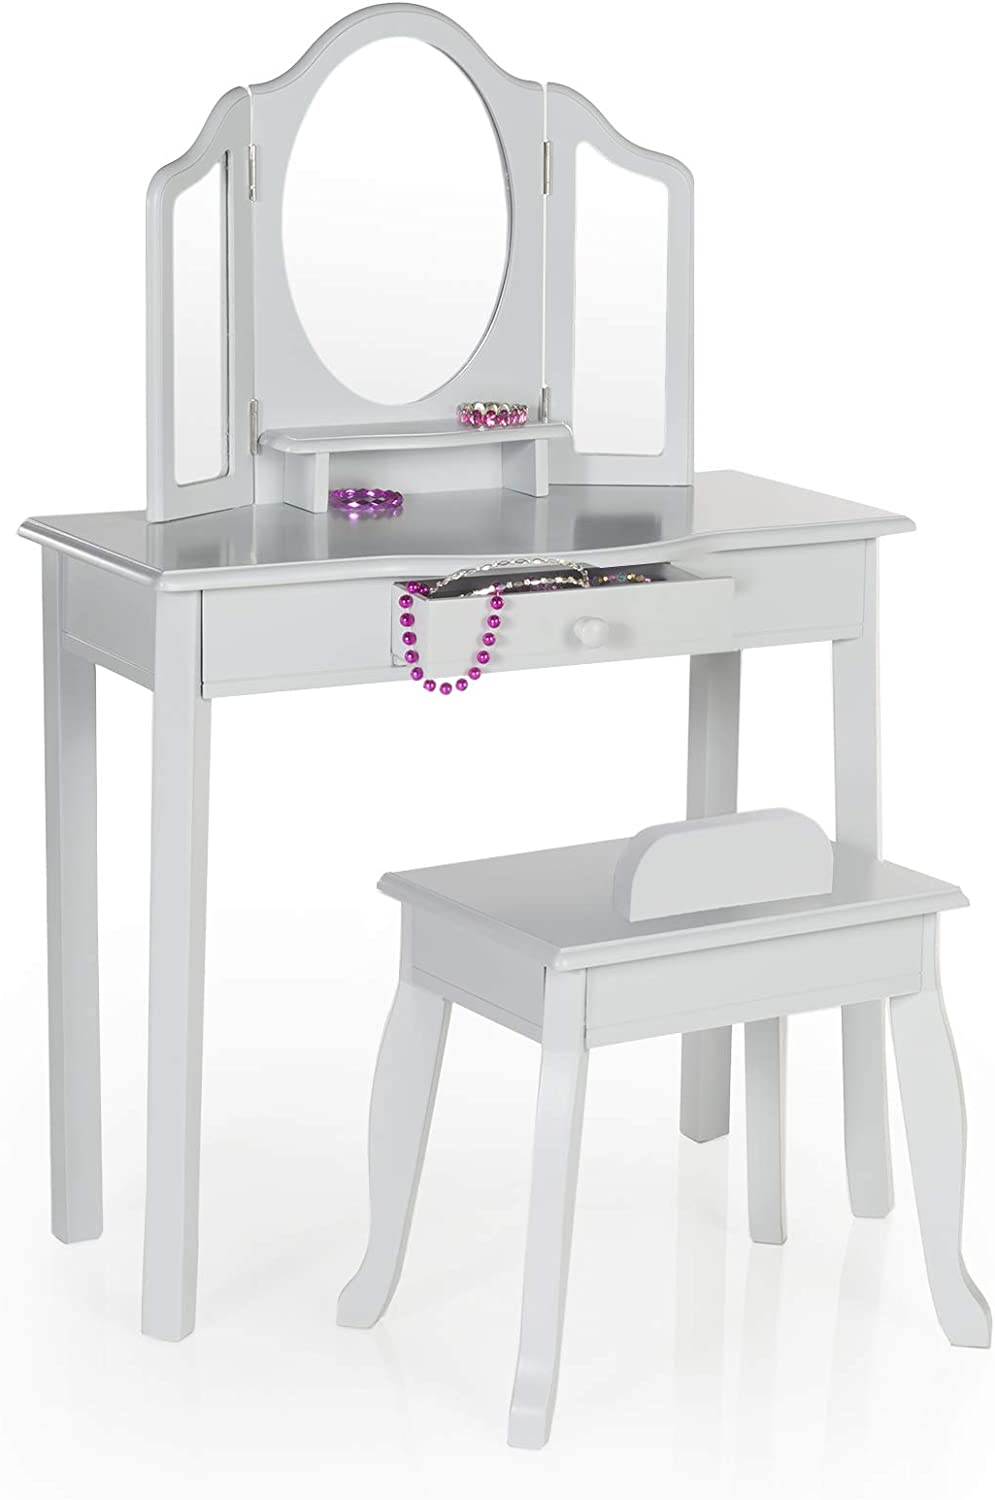 Many popular brands Guidecraft Vanity and Stool – Gray: Kids' Wooden Table Chair Popular products